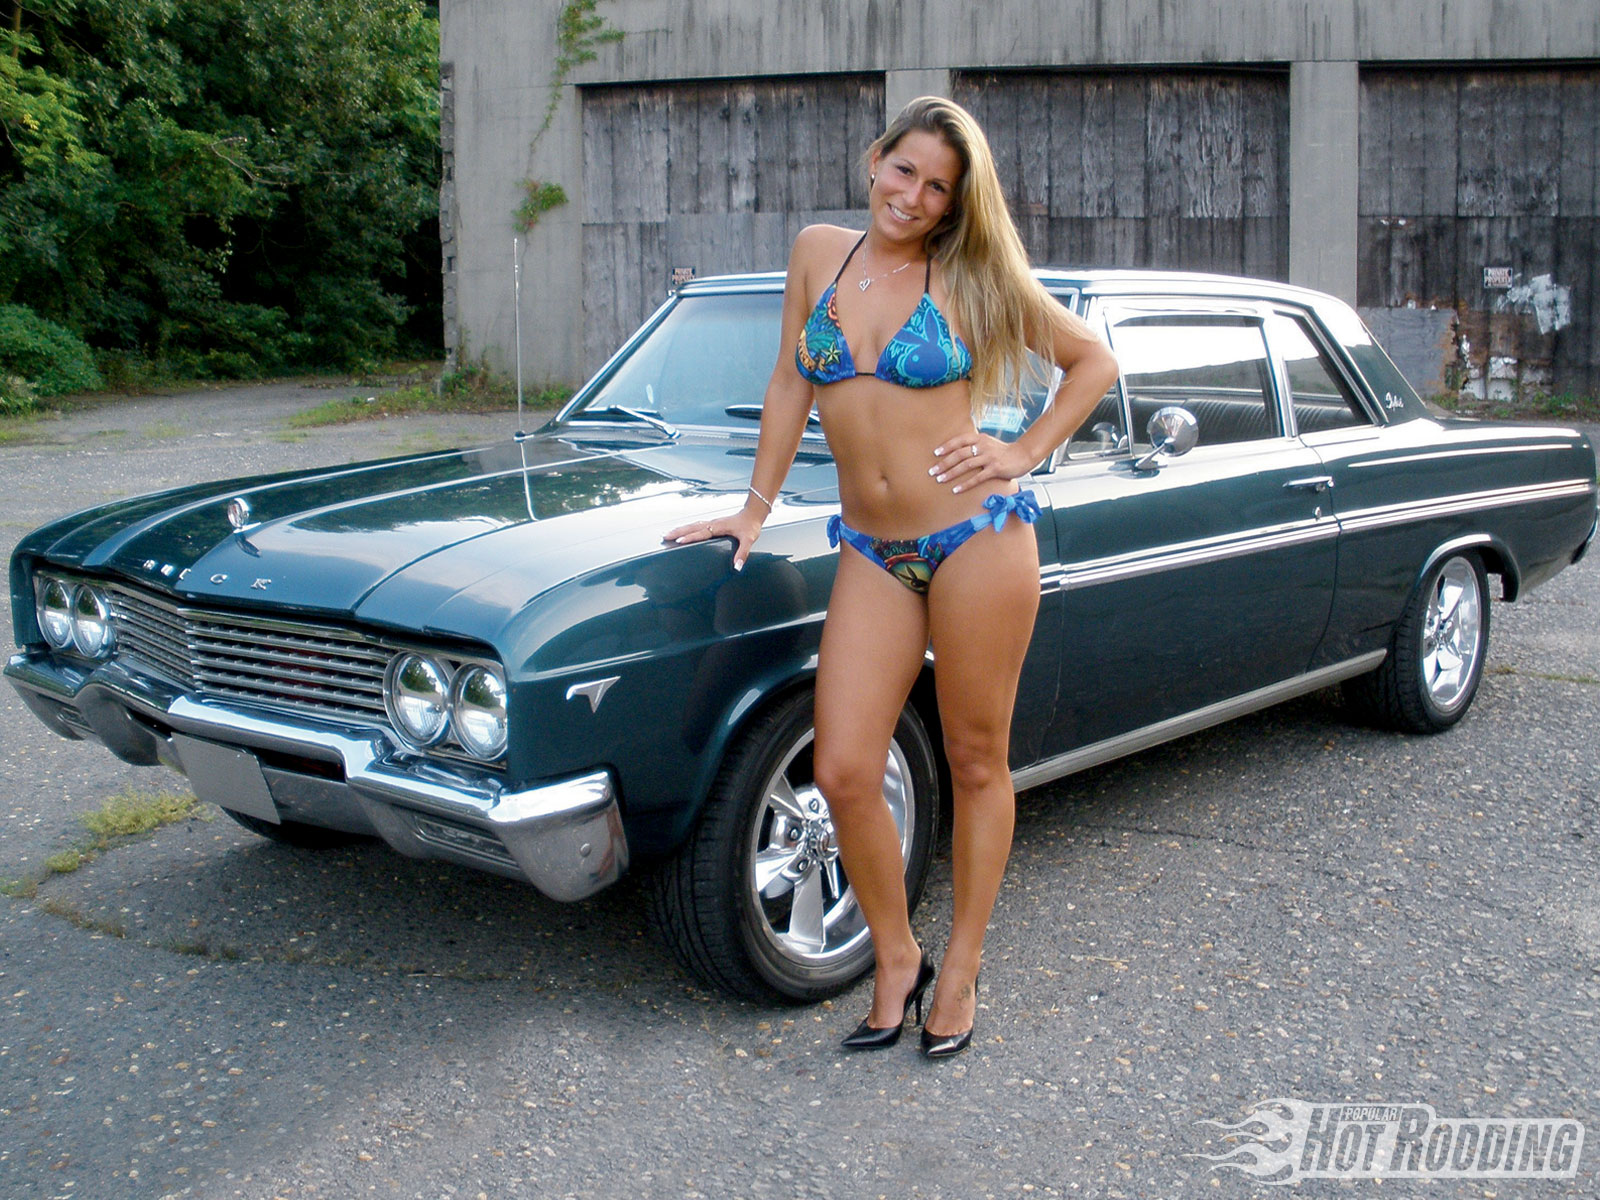 Buick Skylark Muscle Classic Hot Rod Rods Vd Wallpaper